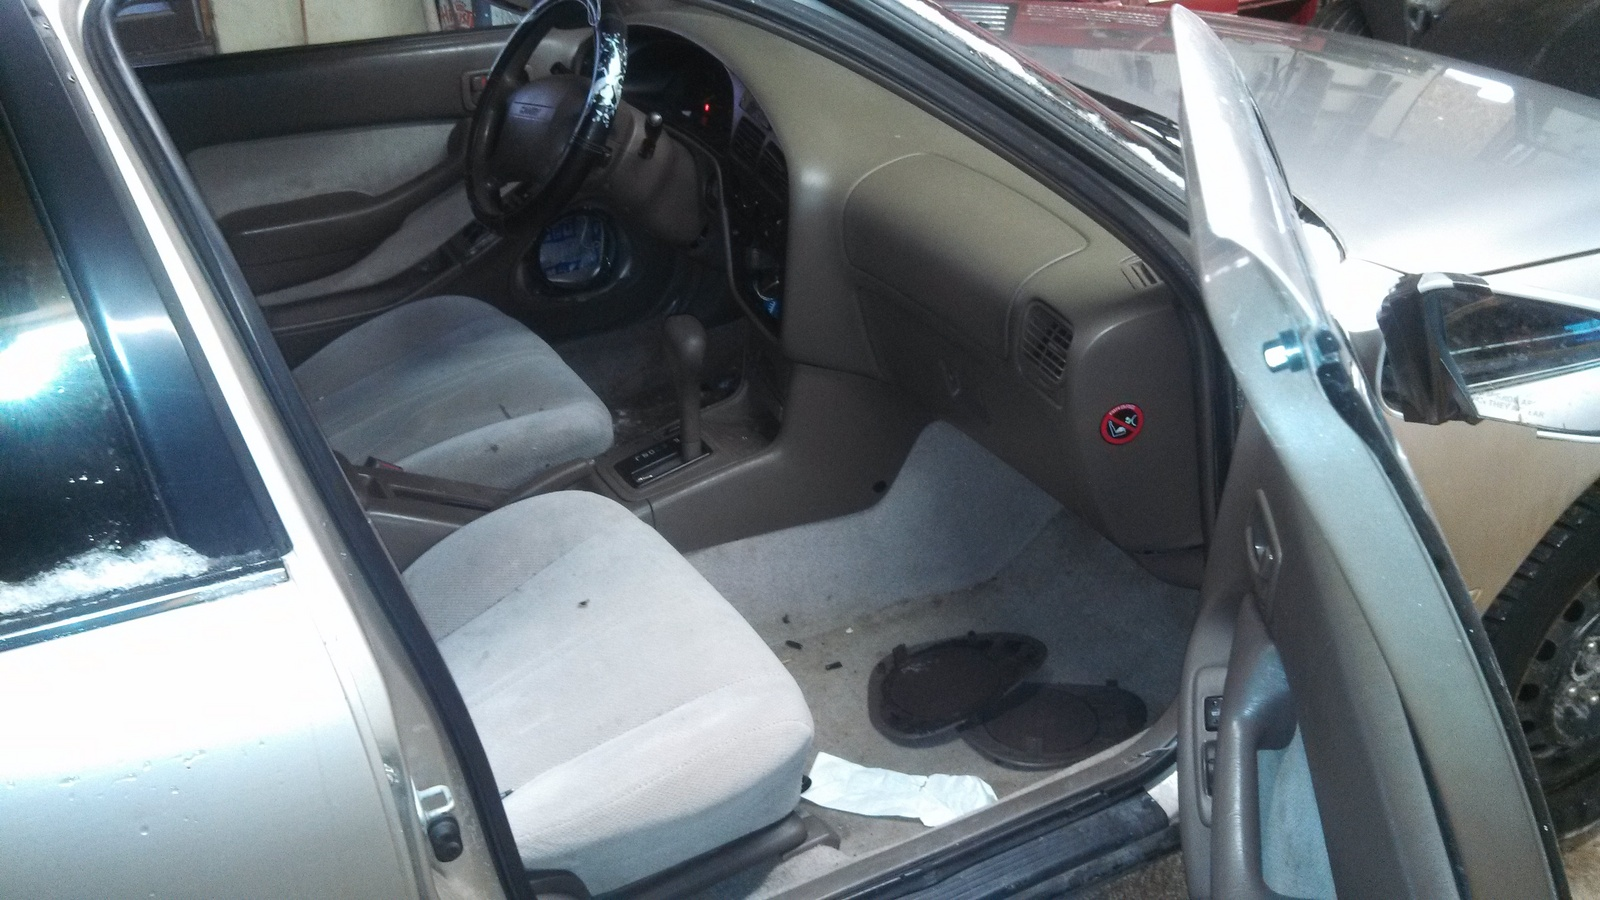 1996 Toyota Camry LE picture, interior